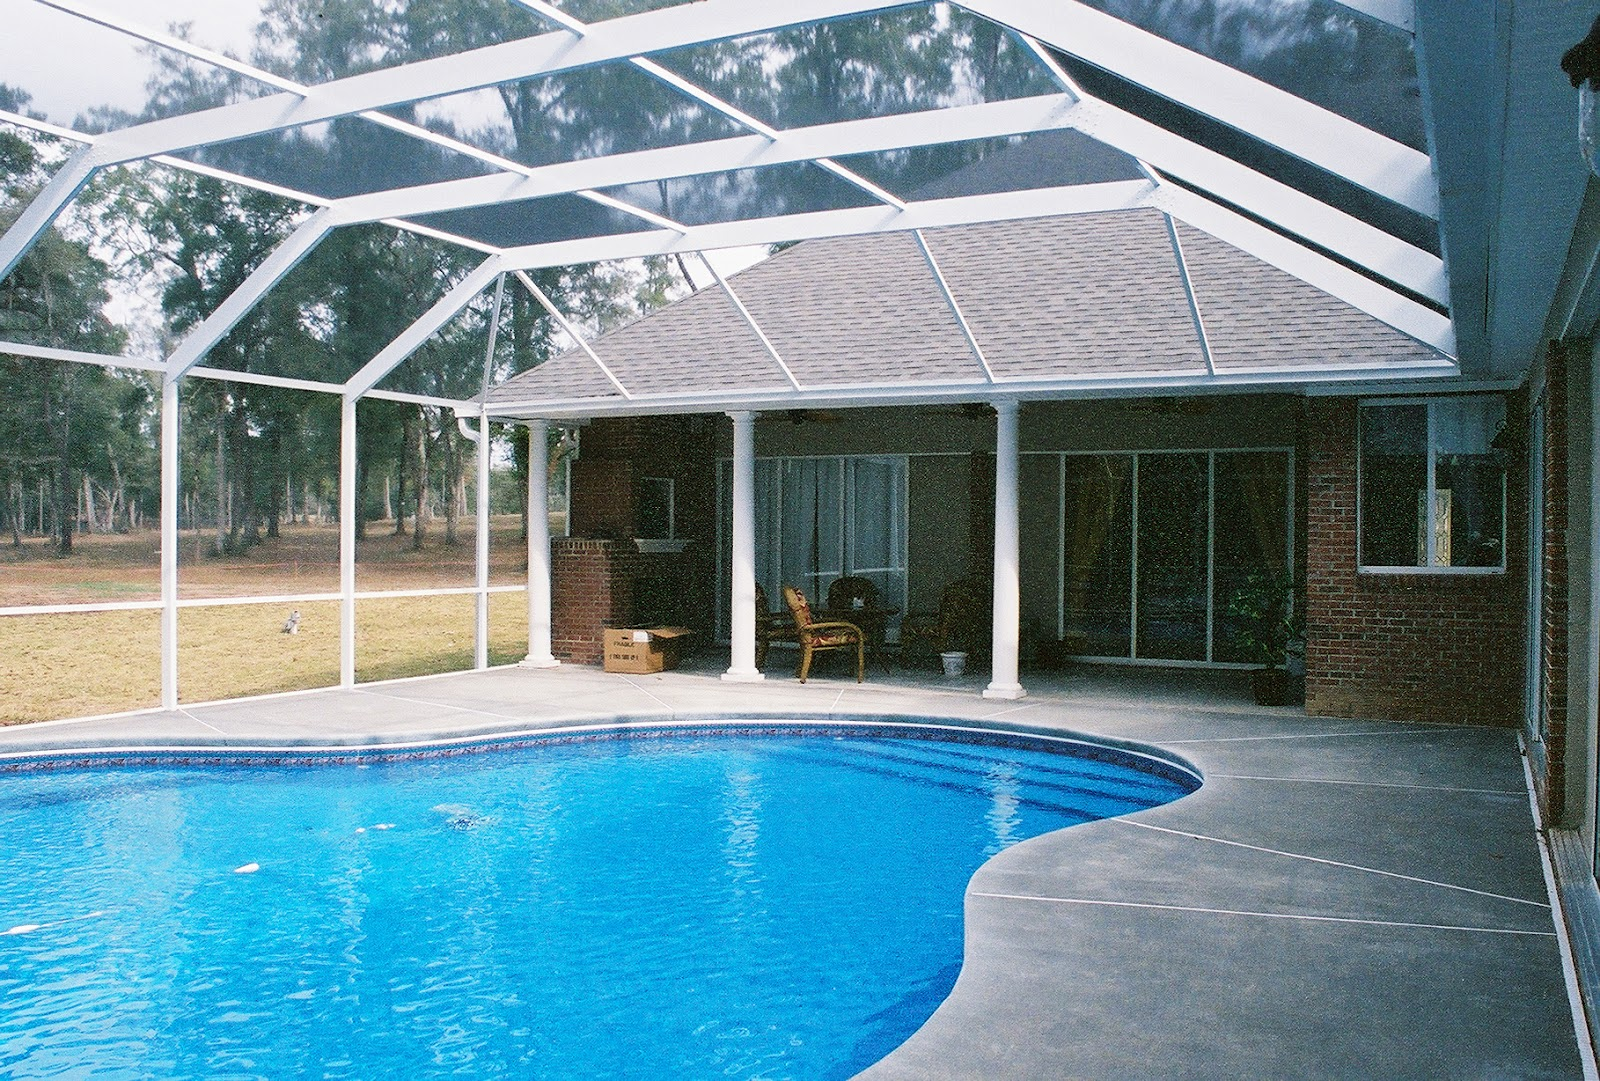 Pool enclosures usa for Inground pool enclosure prices